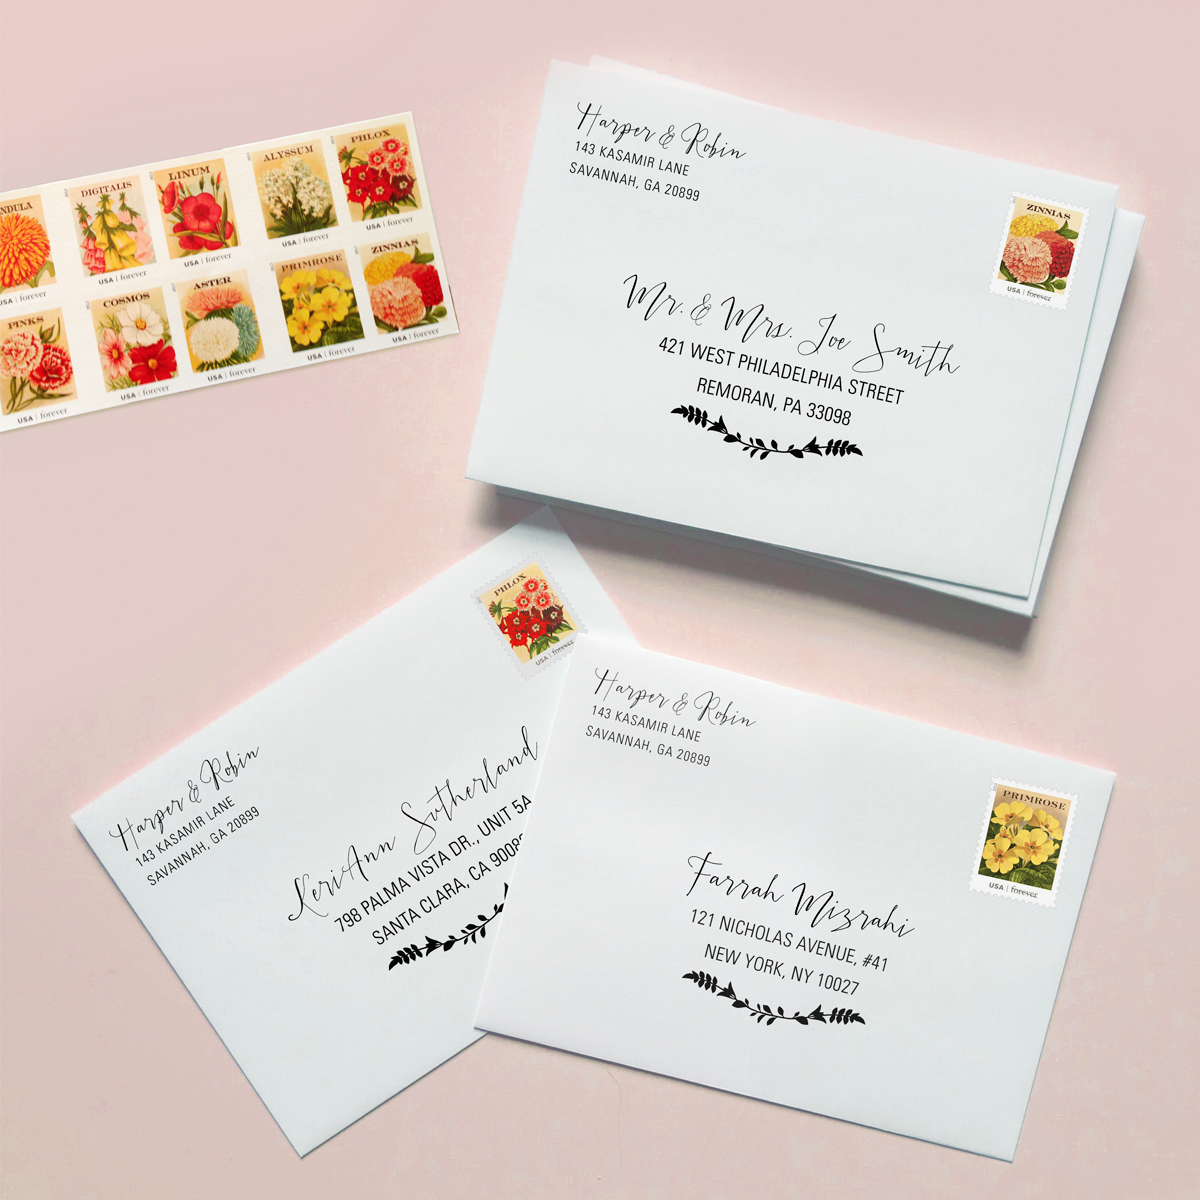 Address Wedding Gift Card Envelope : The Feminist Guide to Addressing Wedding Invitations